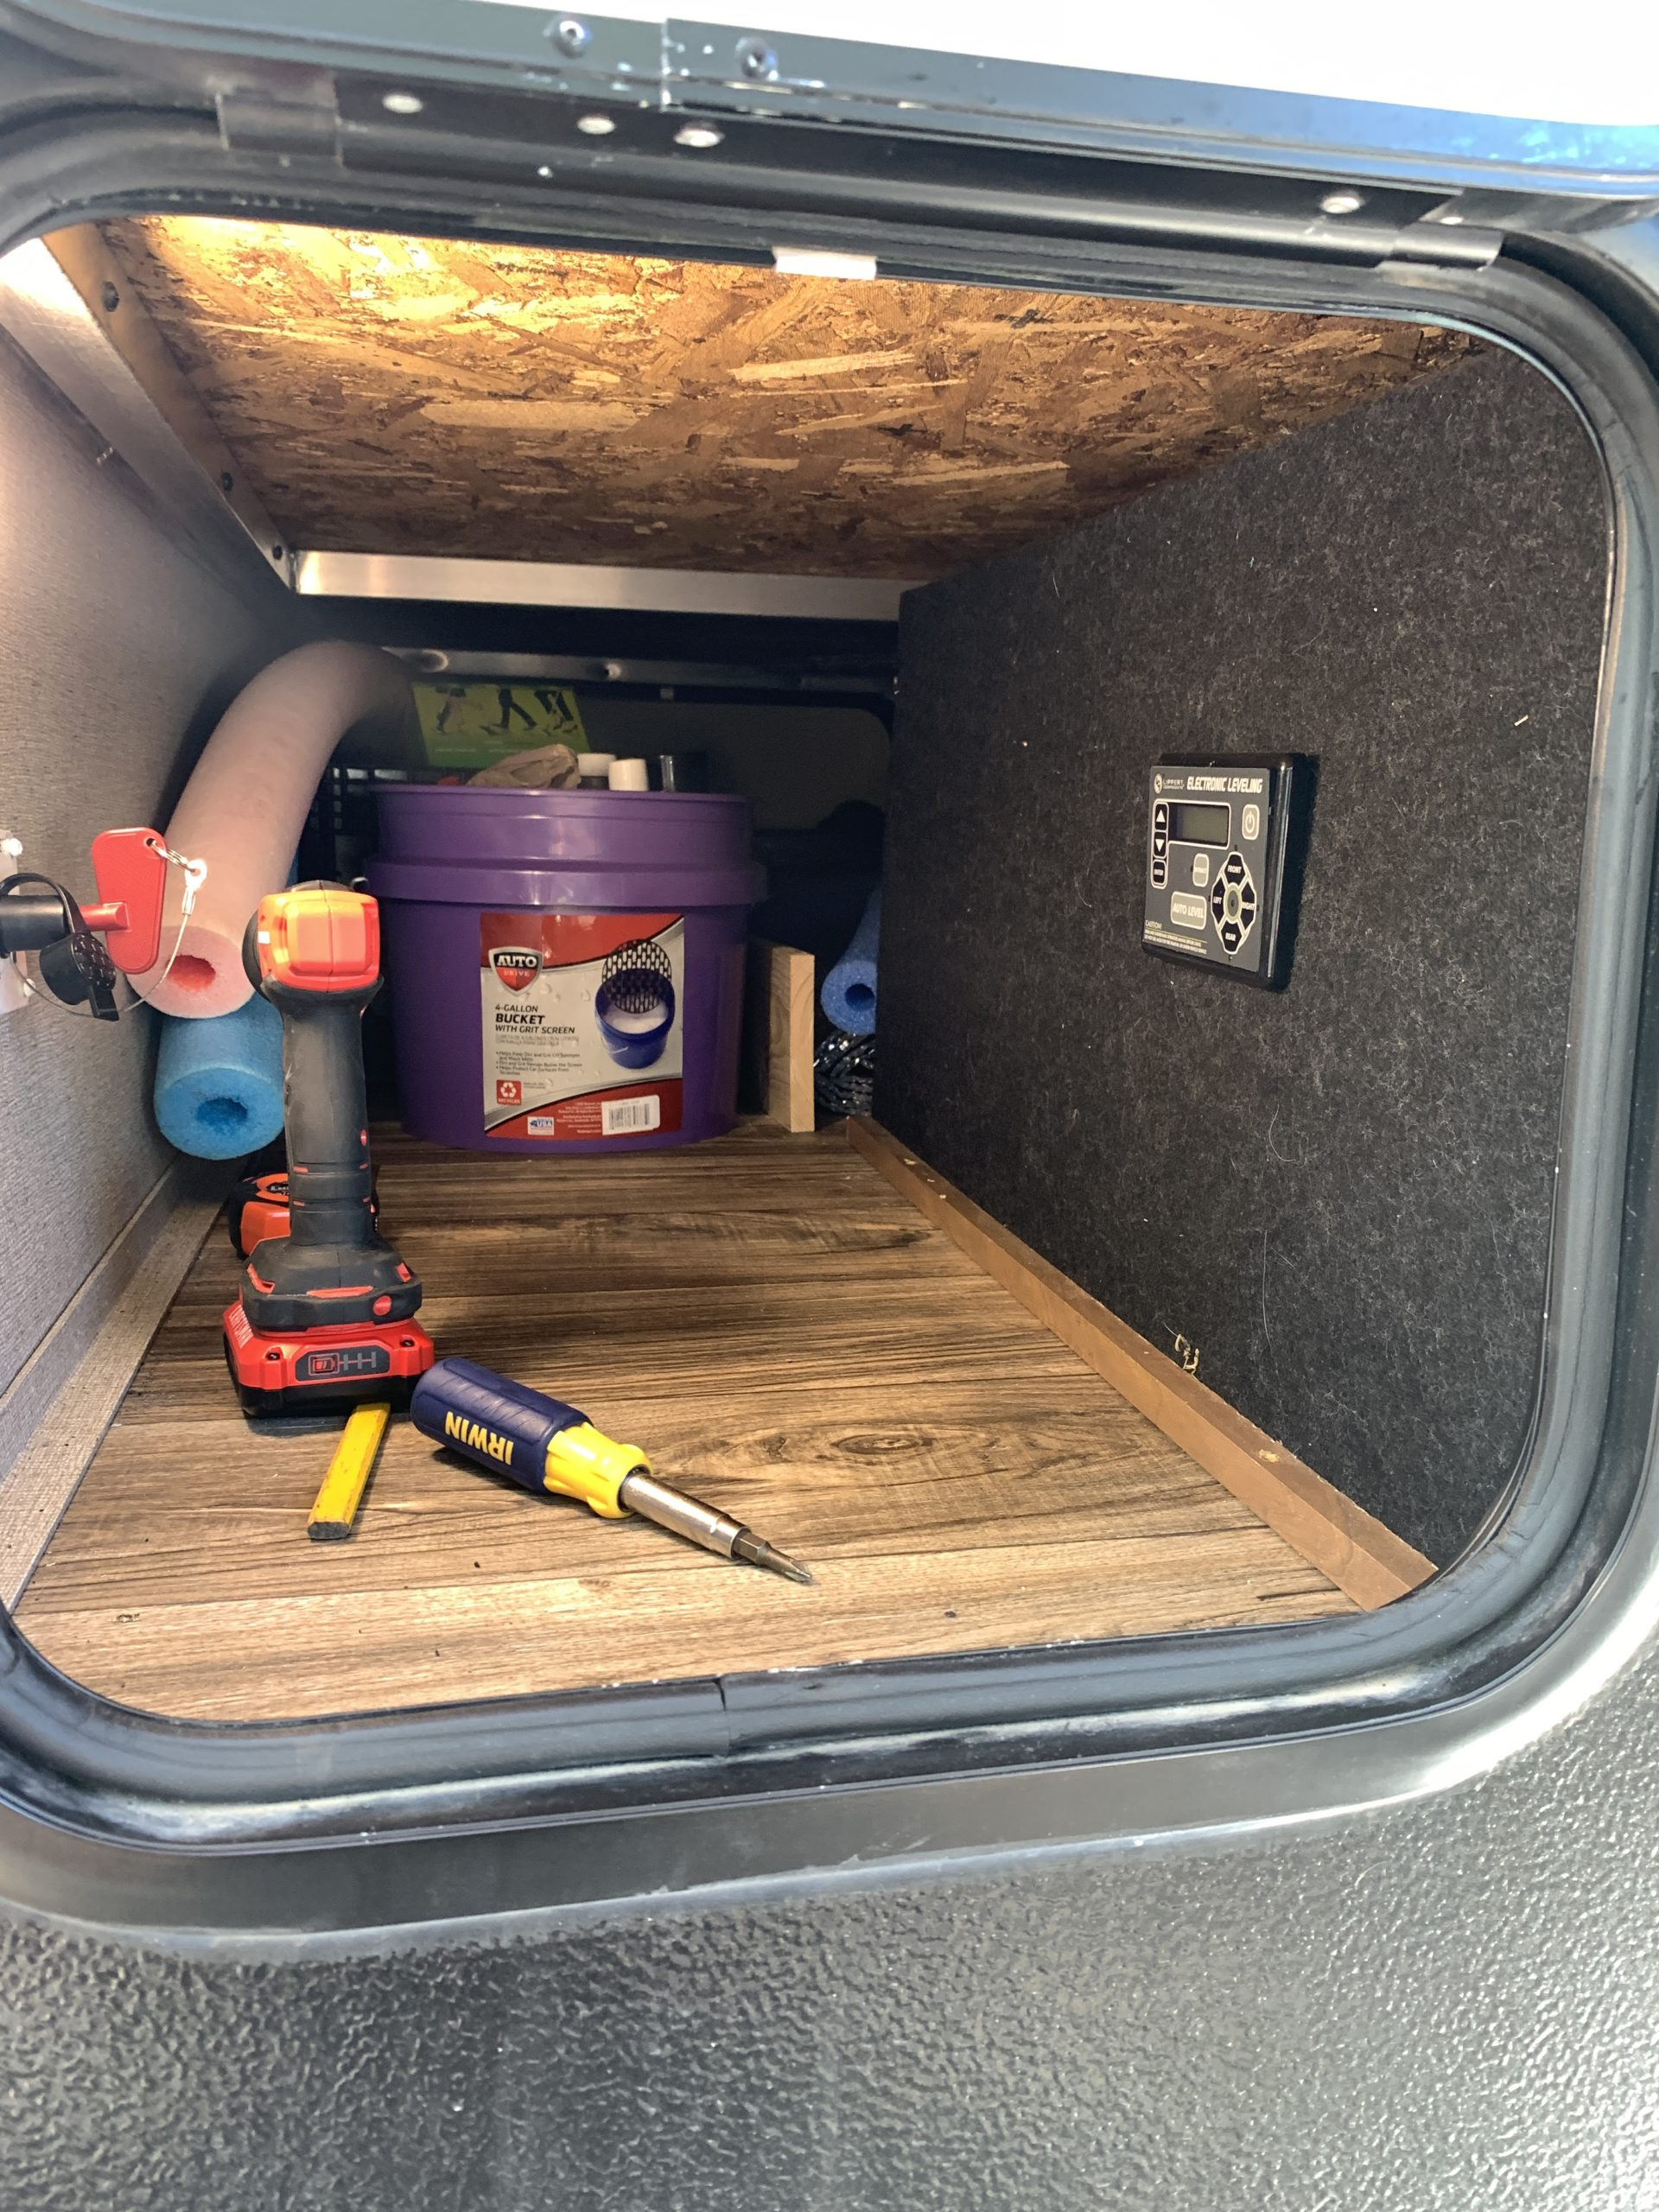 view of the nose pass through storage area. in view are a bucket, some tools, and various pool noodles. There is a carpeted false wall on the right hand side with our automatic leveling system control attached.